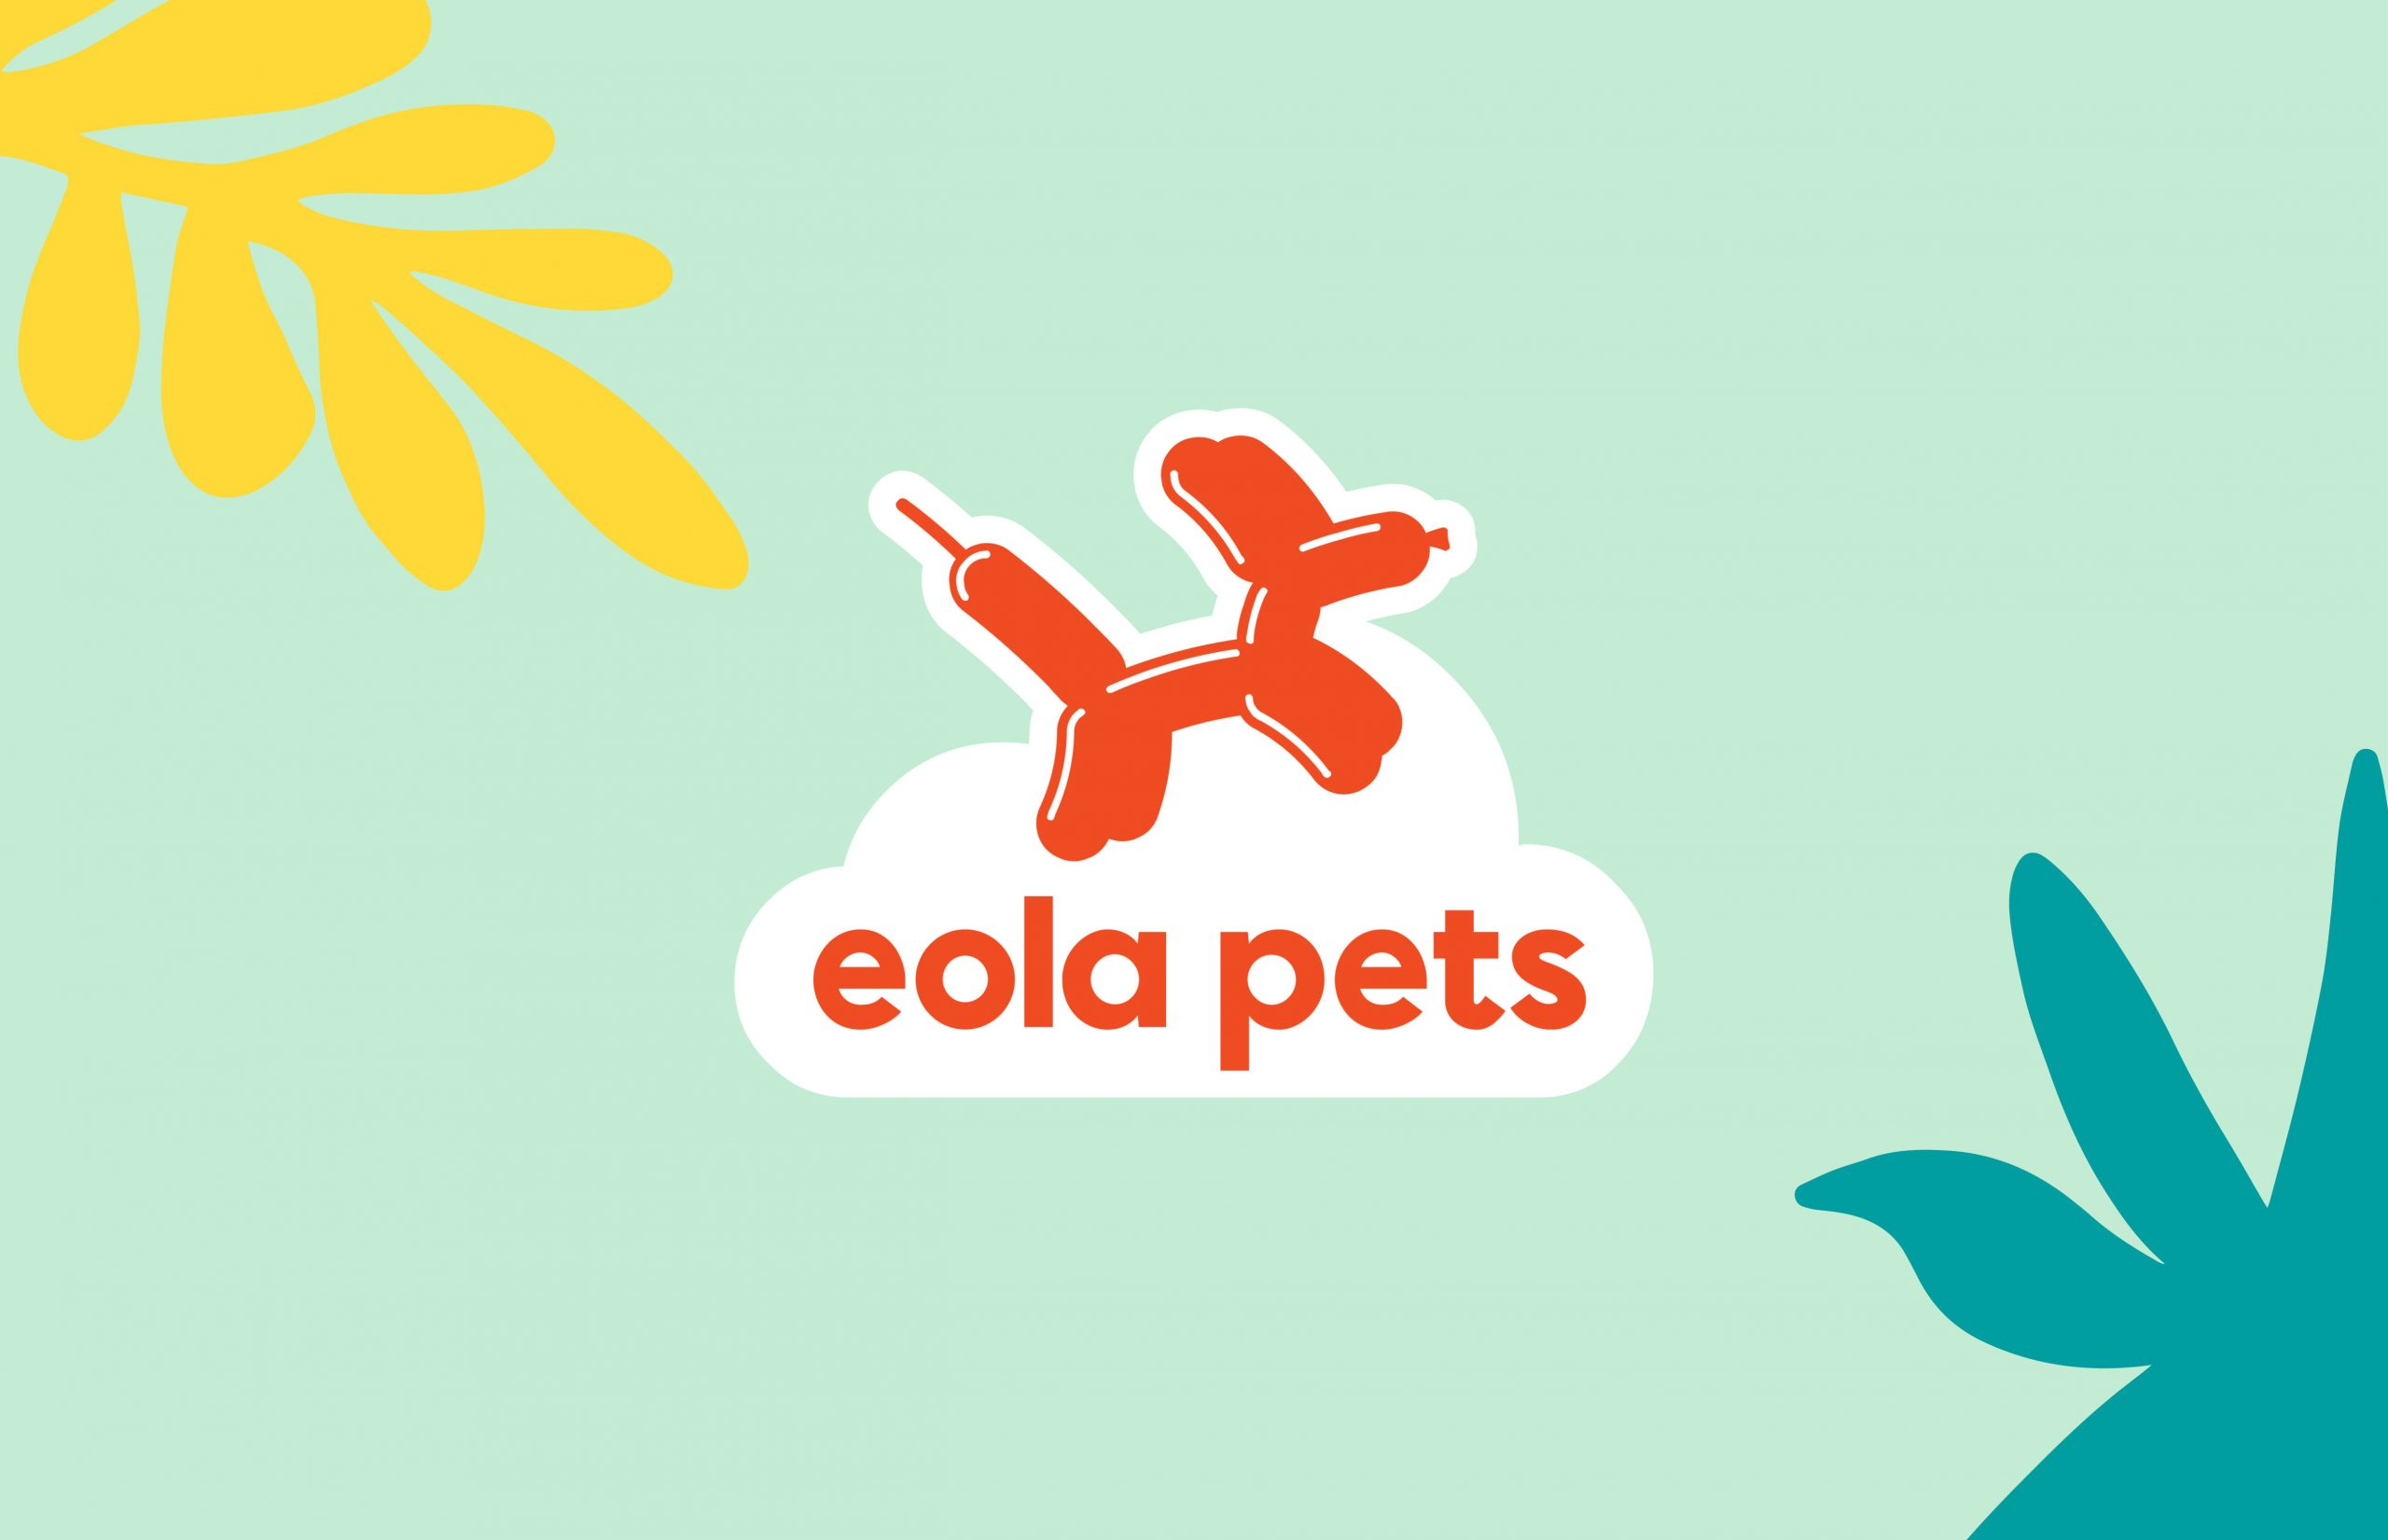 Eola Pets red logo with dog balloon